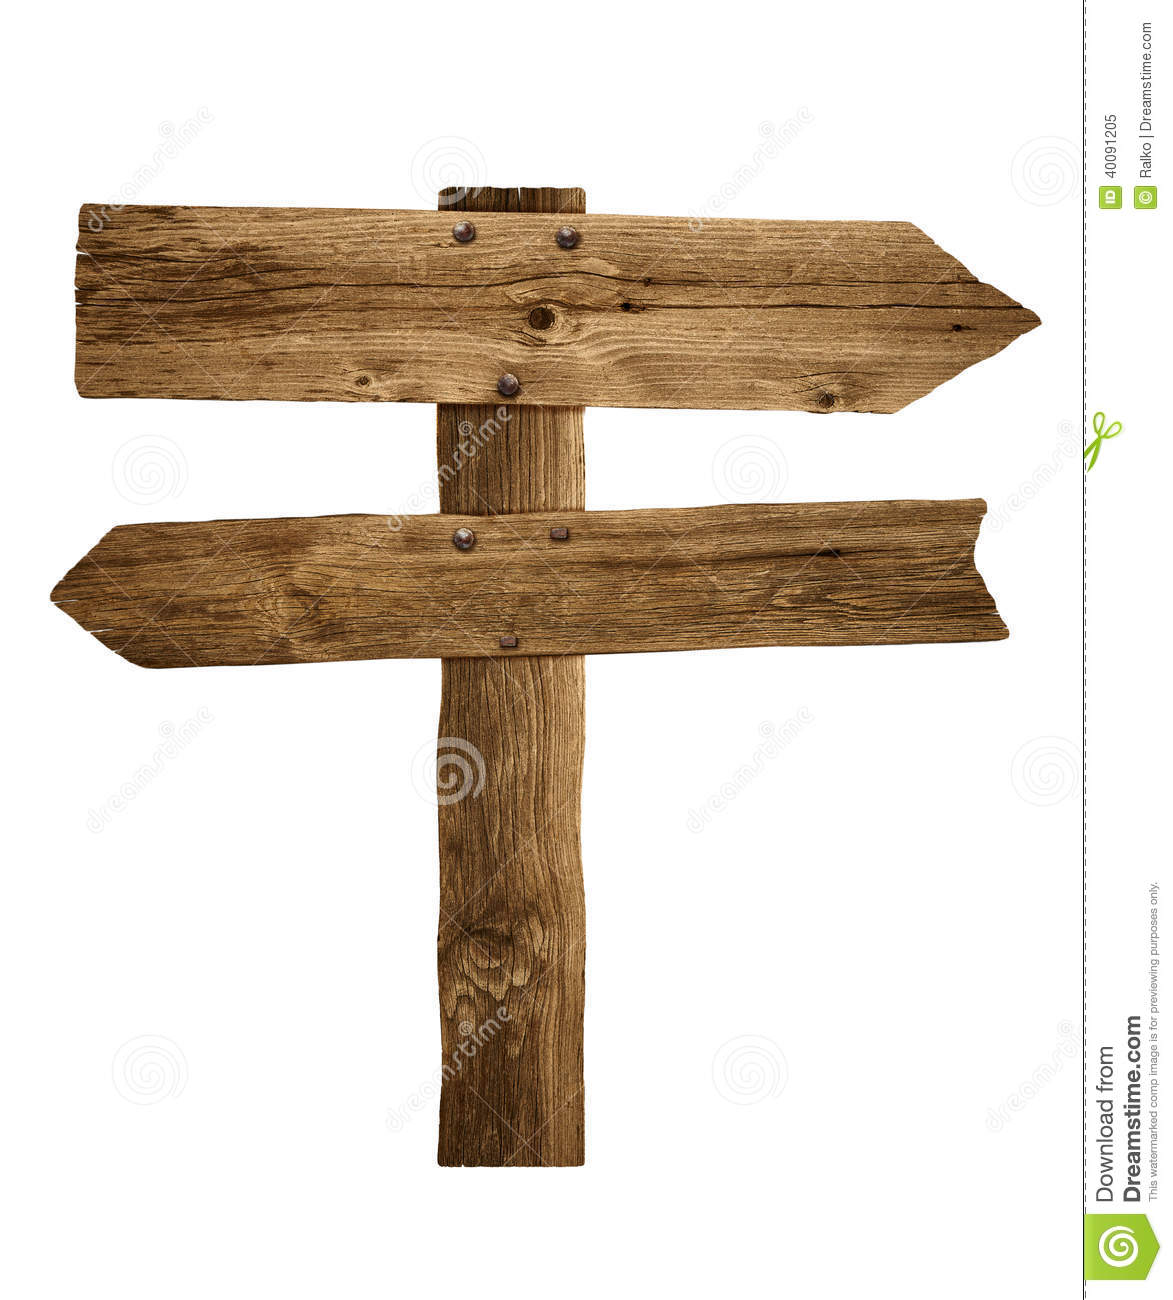 wooden arrow sign post or road signpost stock image image of